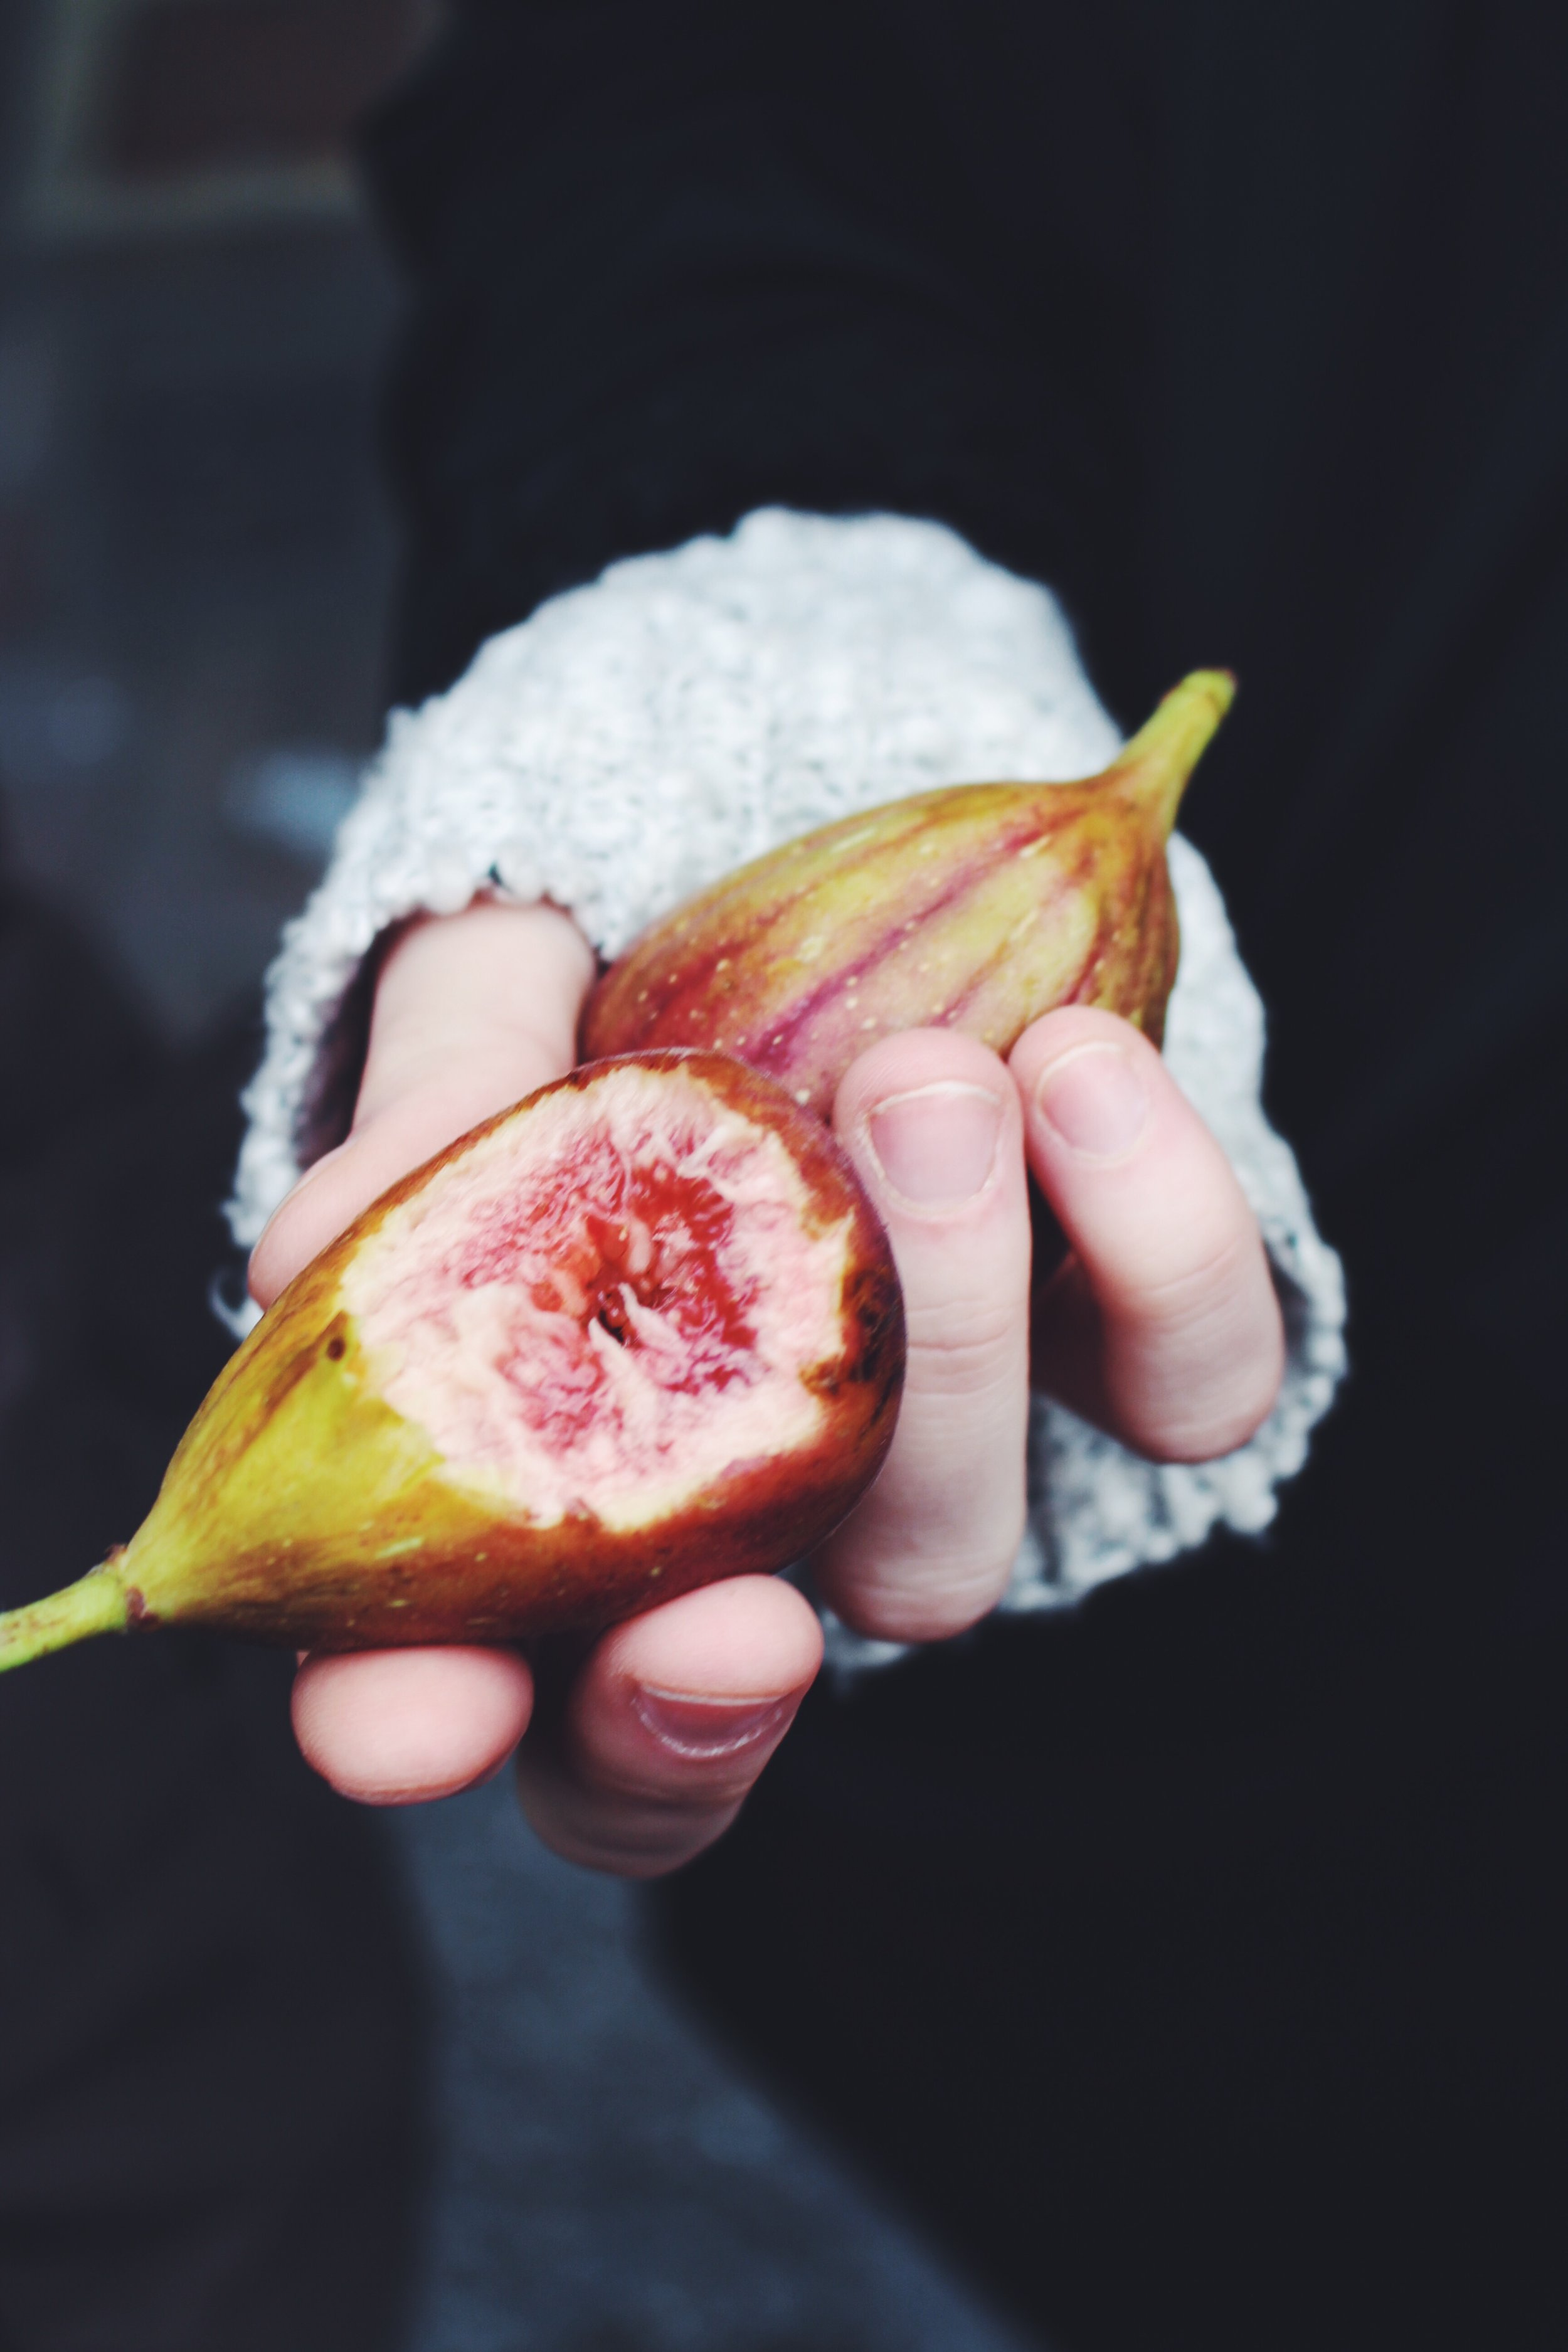 figs in hand galway copy.jpg